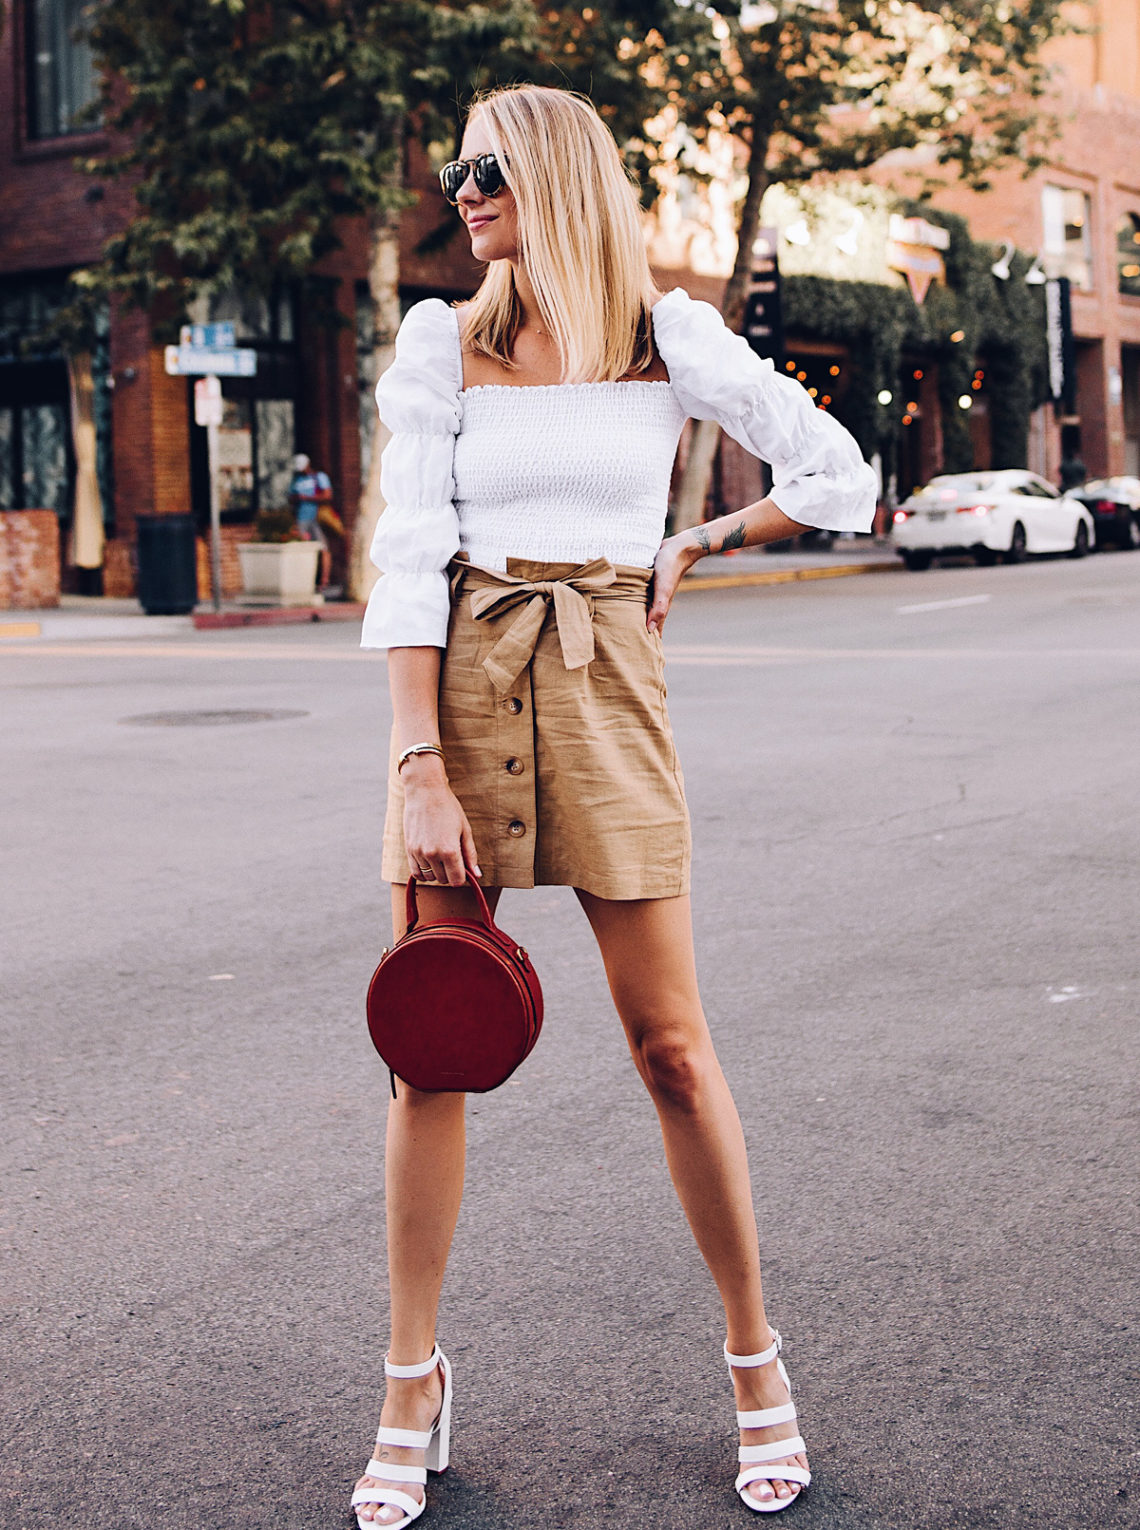 Blonde Woman Wearing Reformation White Smocked Blouse Topshop Khaki Button Front Skirt White Triple Strap Heeled Sandals Mansur Gavriel Tan Circle Handbag Fashion Jackson San Diego Blogger Fashion Blogger Street Style